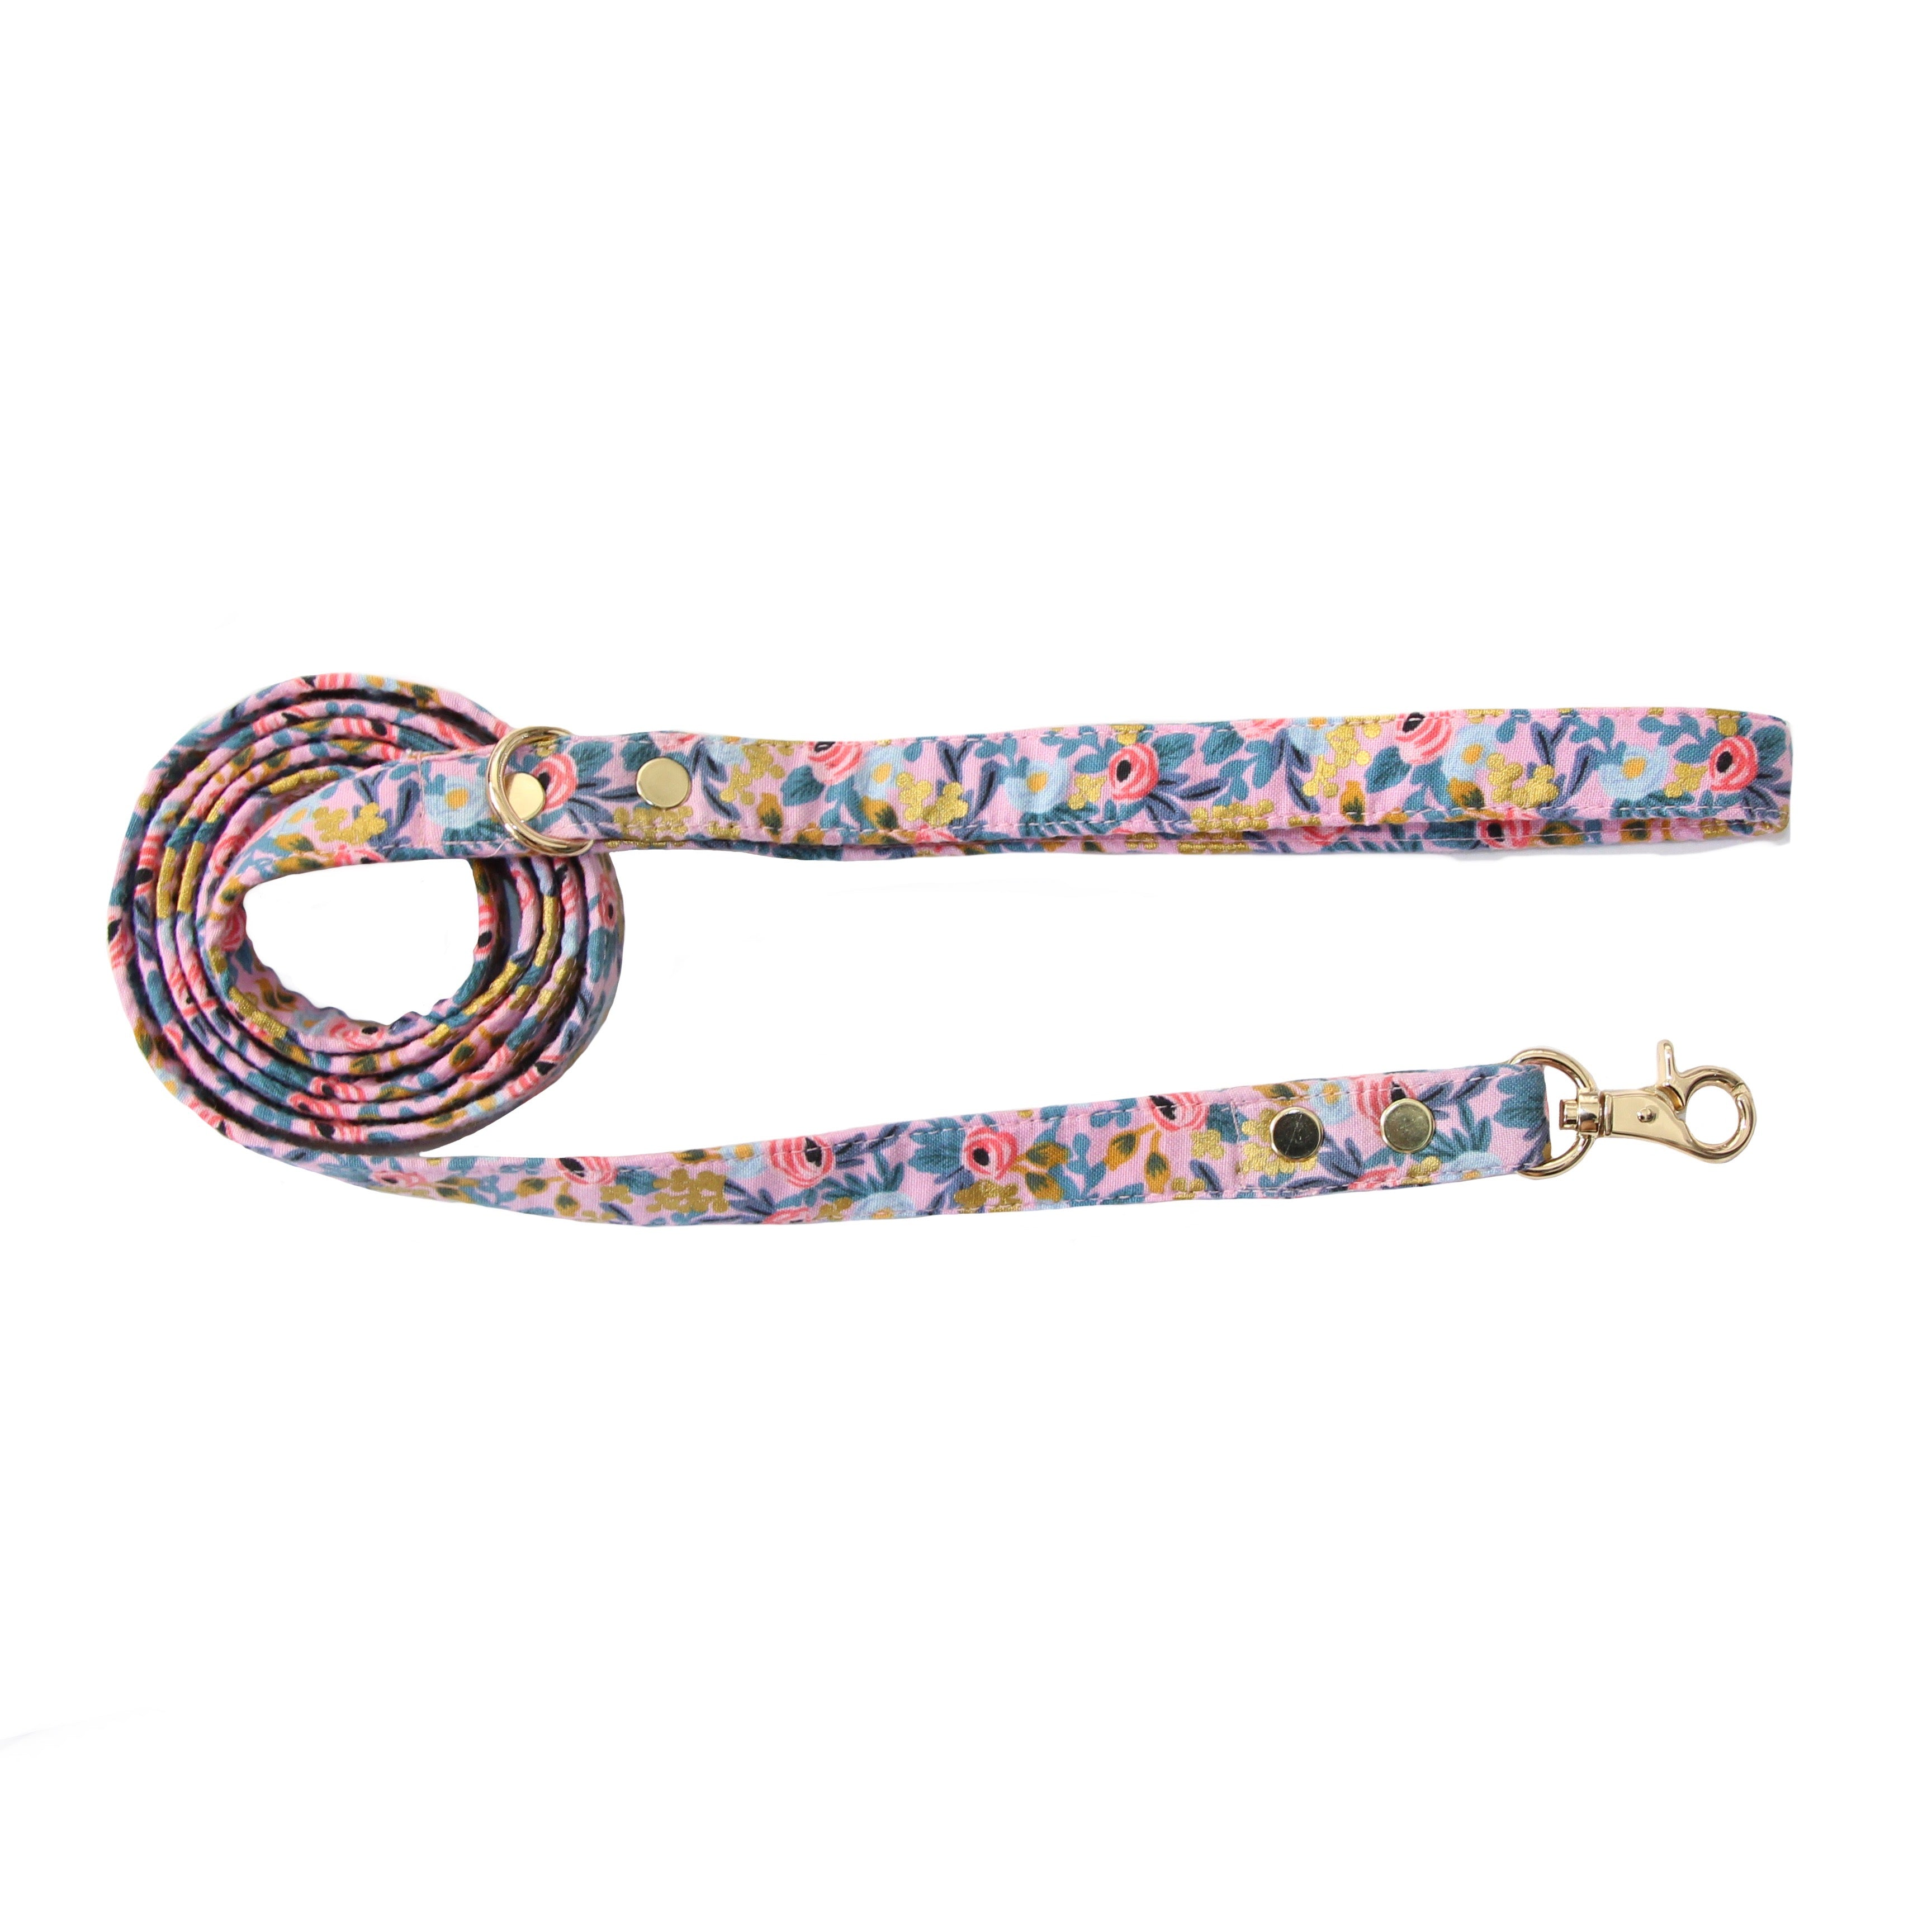 Clothes Companion The Belle Dog Leash